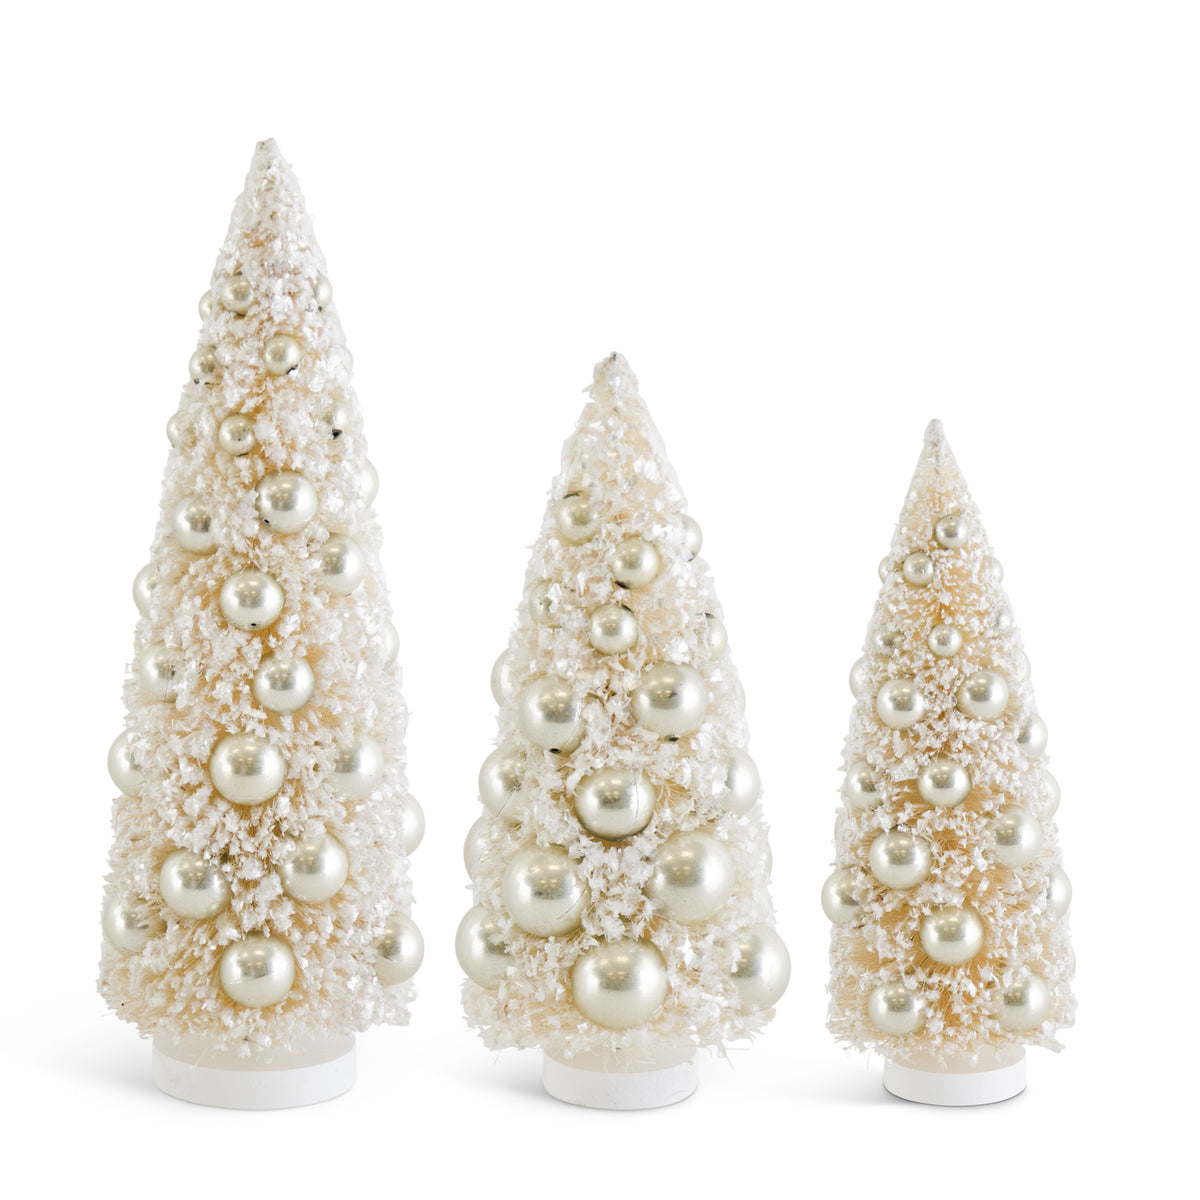 Cream Bottle Brush Trees with Champagne Ornament Set